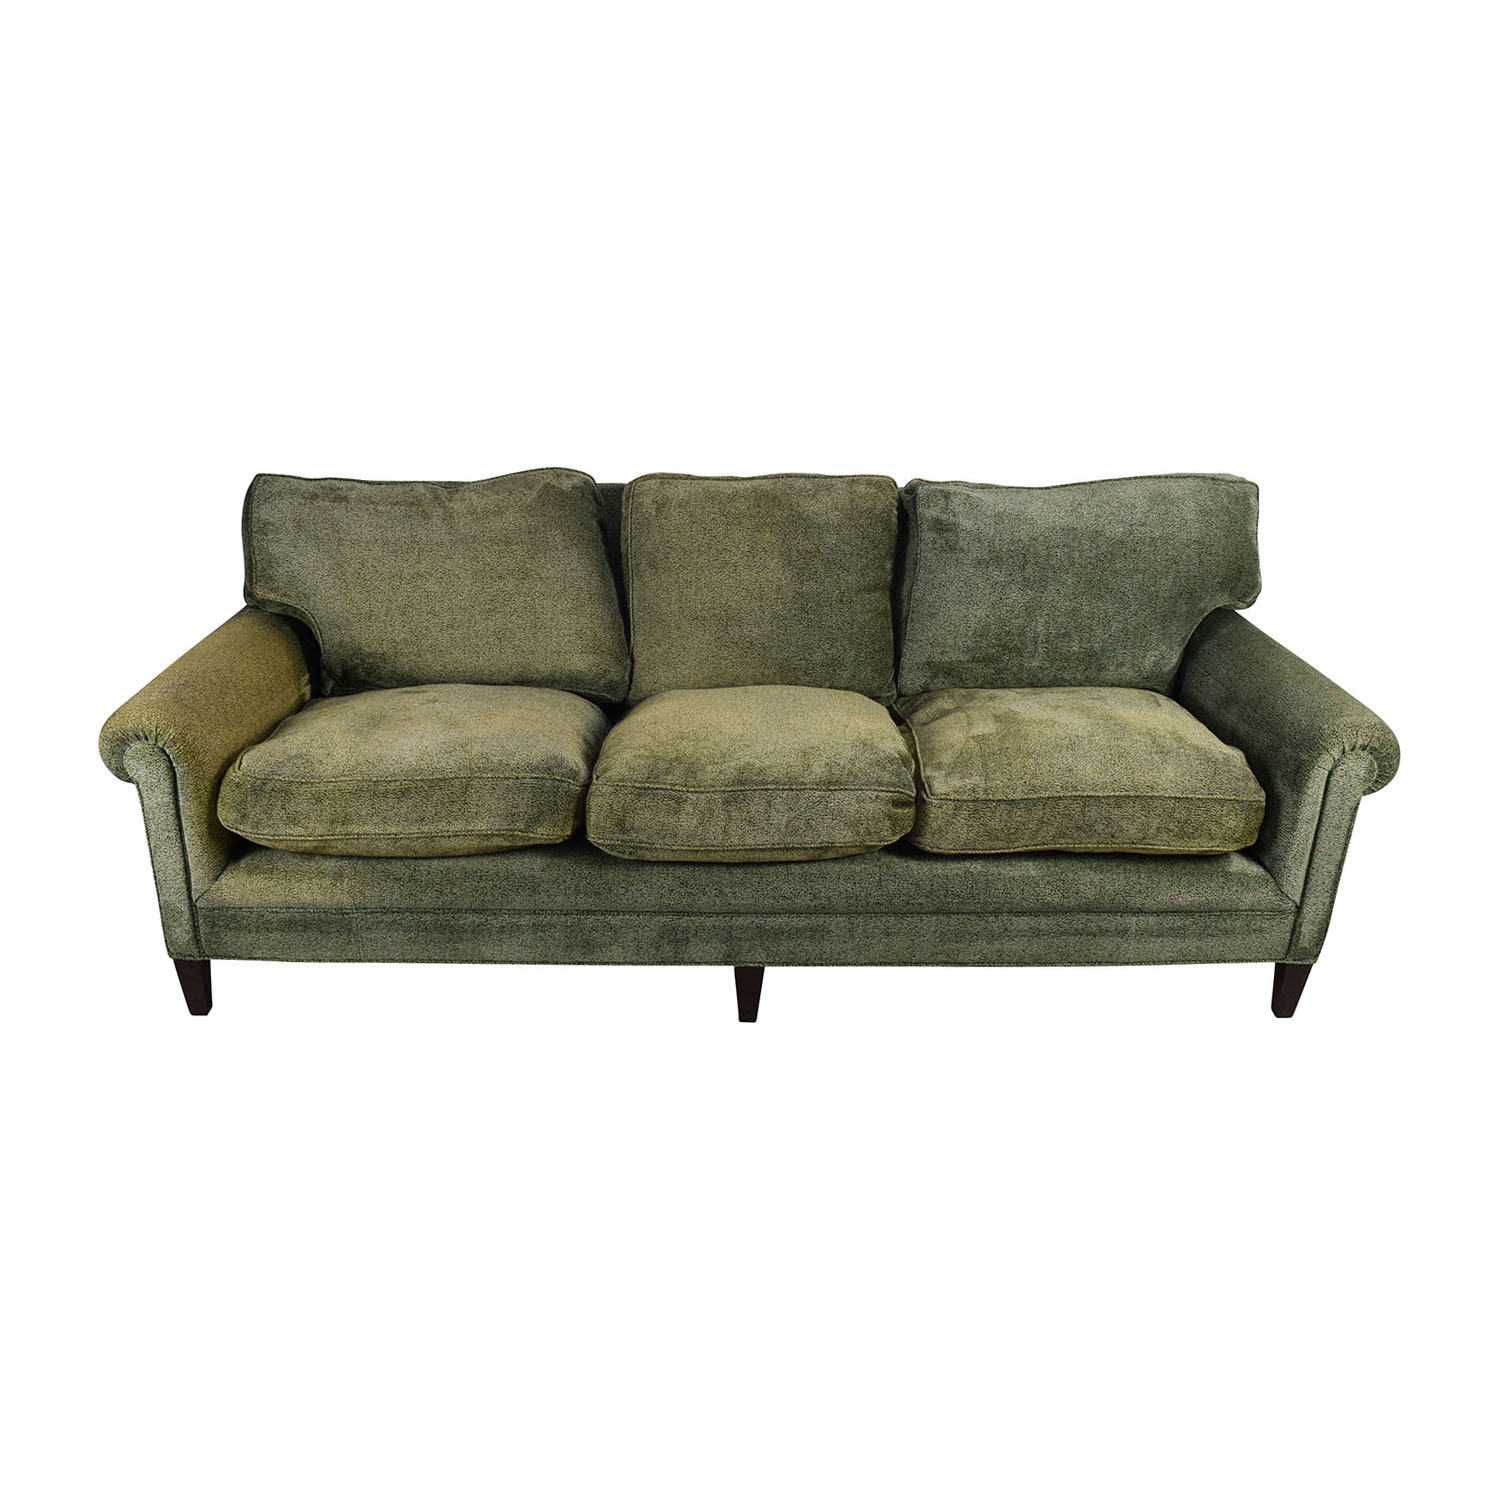 George Smith George Smith Classic English Style Sofa for sale